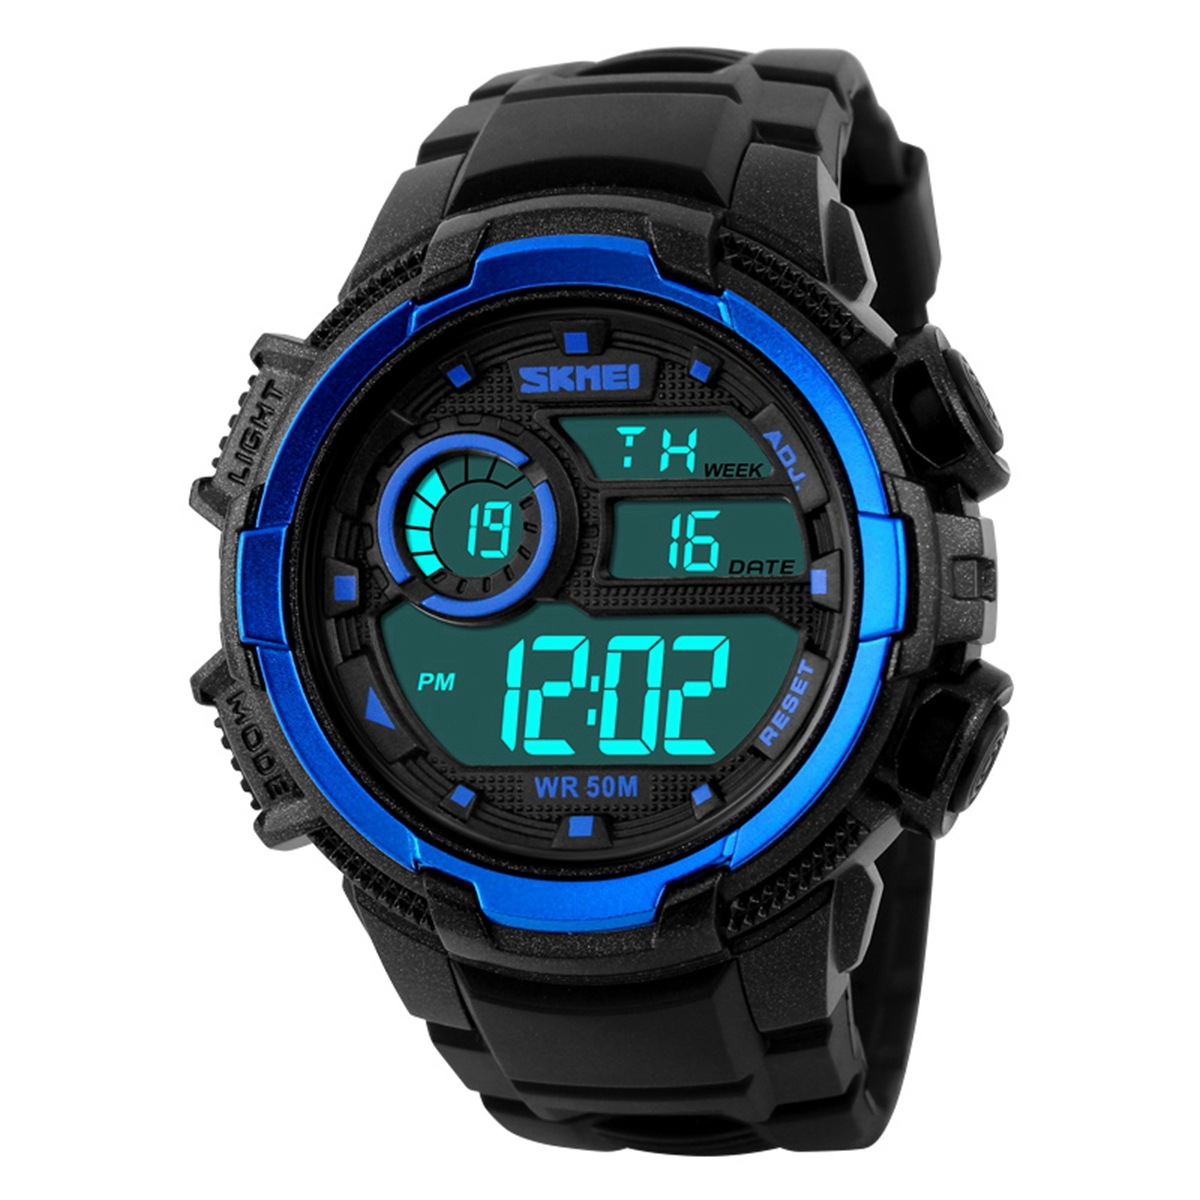 2016 New SKMEI popular Brand Men Military Sports fashion Watches Digital LED Wristwatches black rubber strap relogio masculino(China (Mainland))